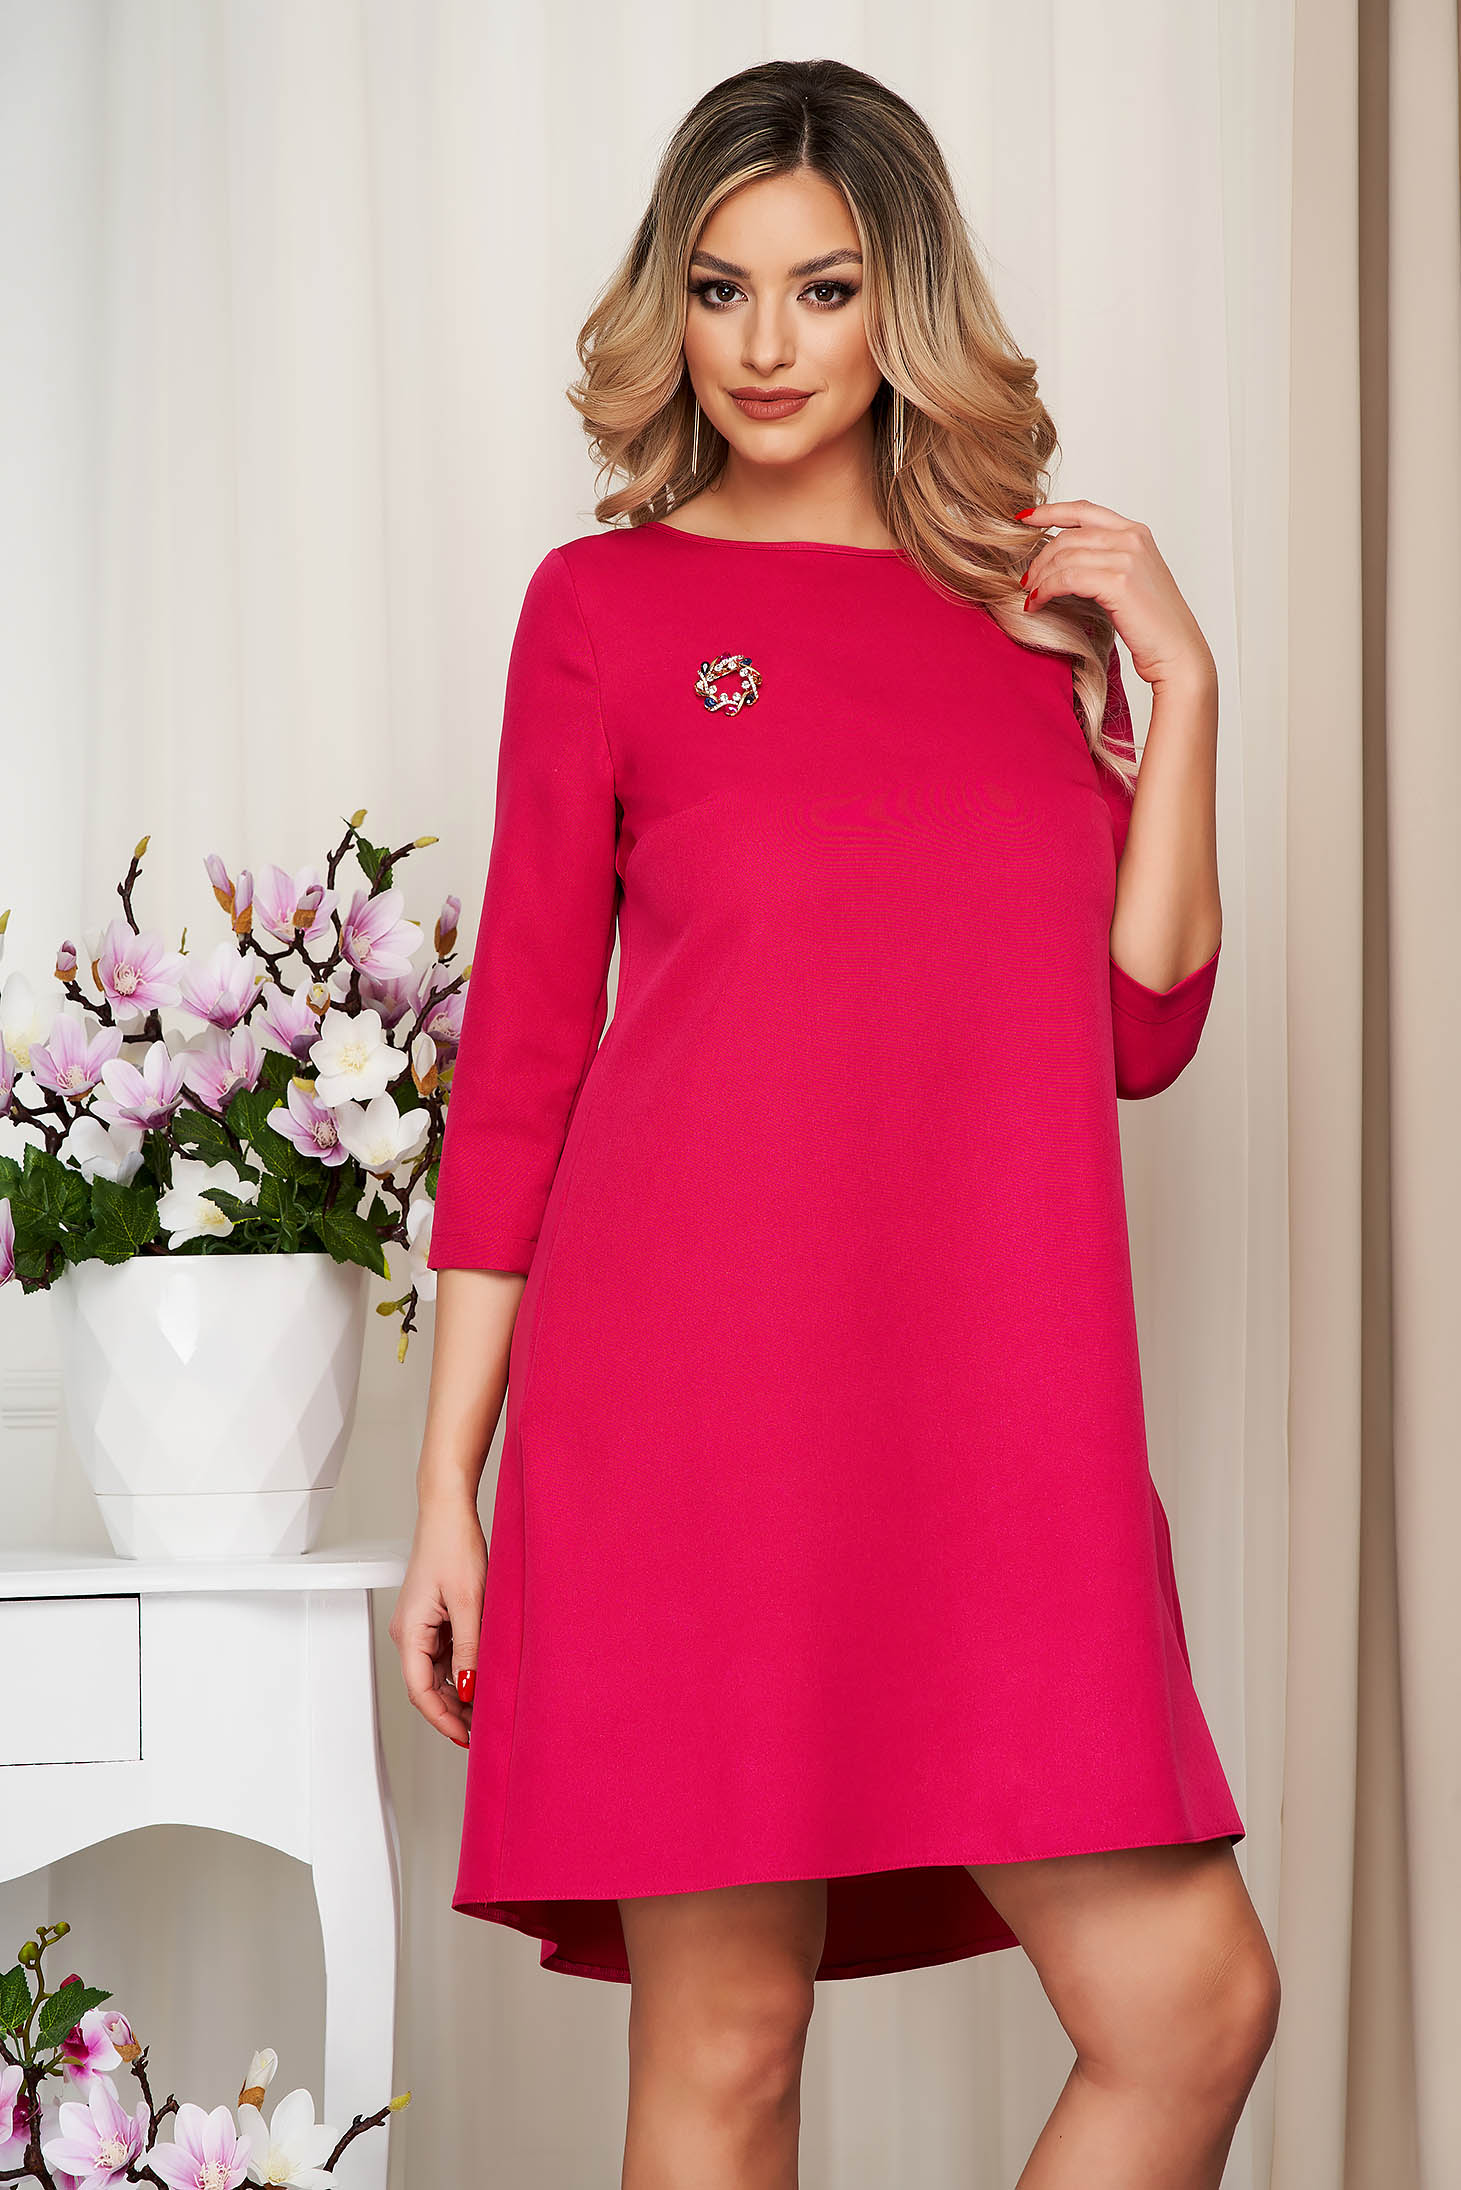 Dress StarShinerS fuchsia cloth loose fit accessorized with breastpin